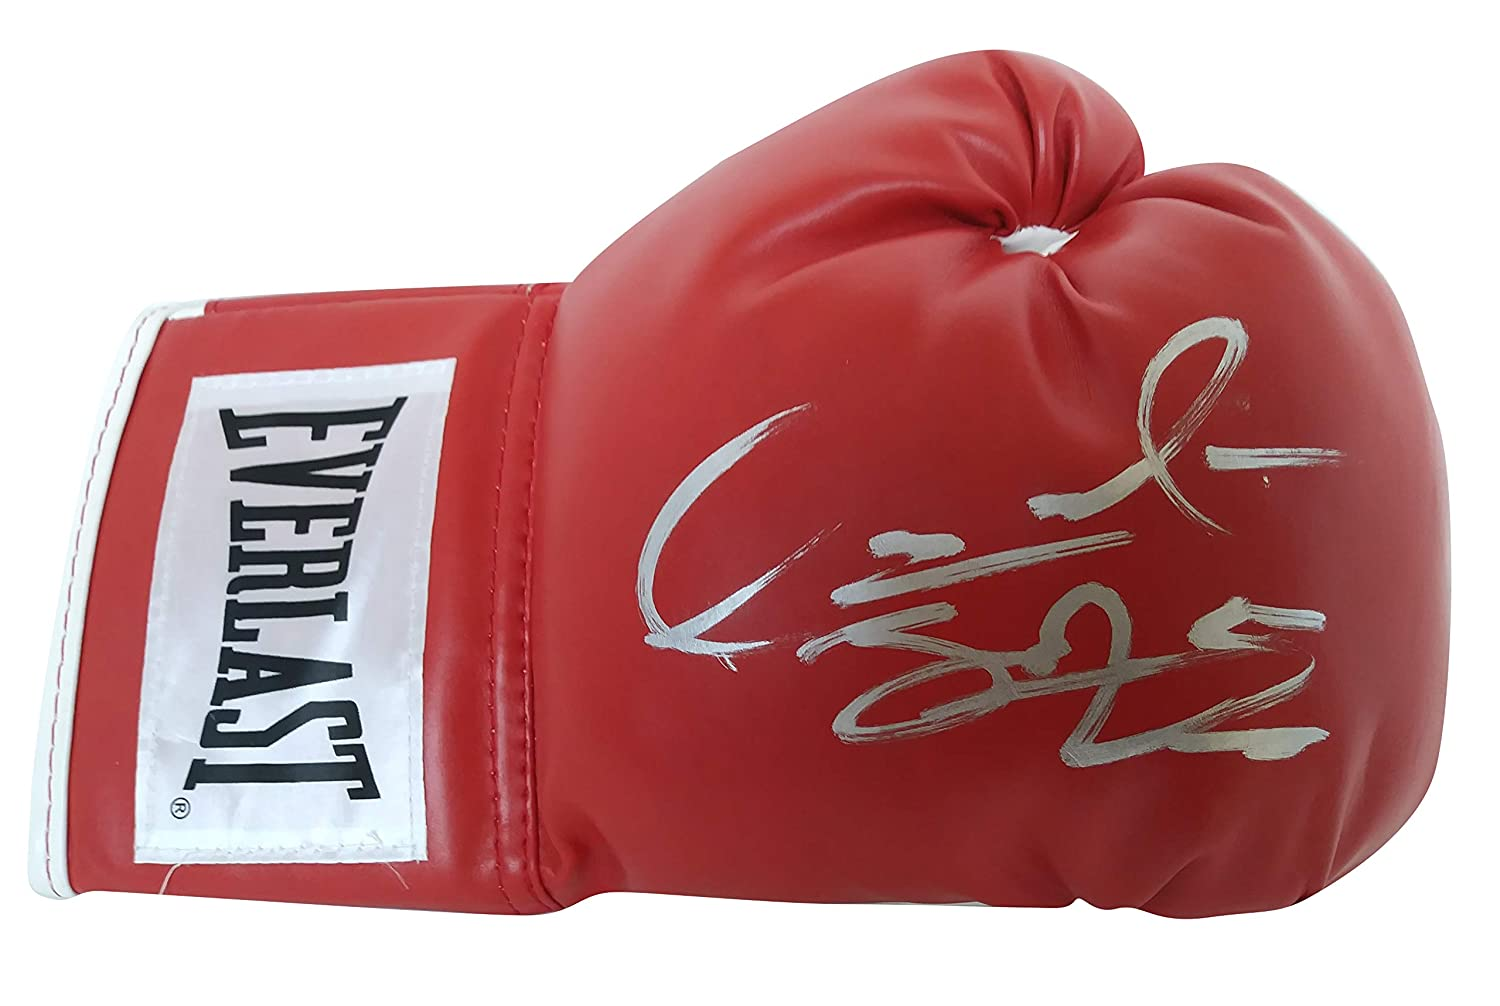 WBC World Heavyweight Champion Deontay Wilder Autographed Hand Signed Everlast Red Left-Handed Boxing Glove with Proof Photo of Signing and COA